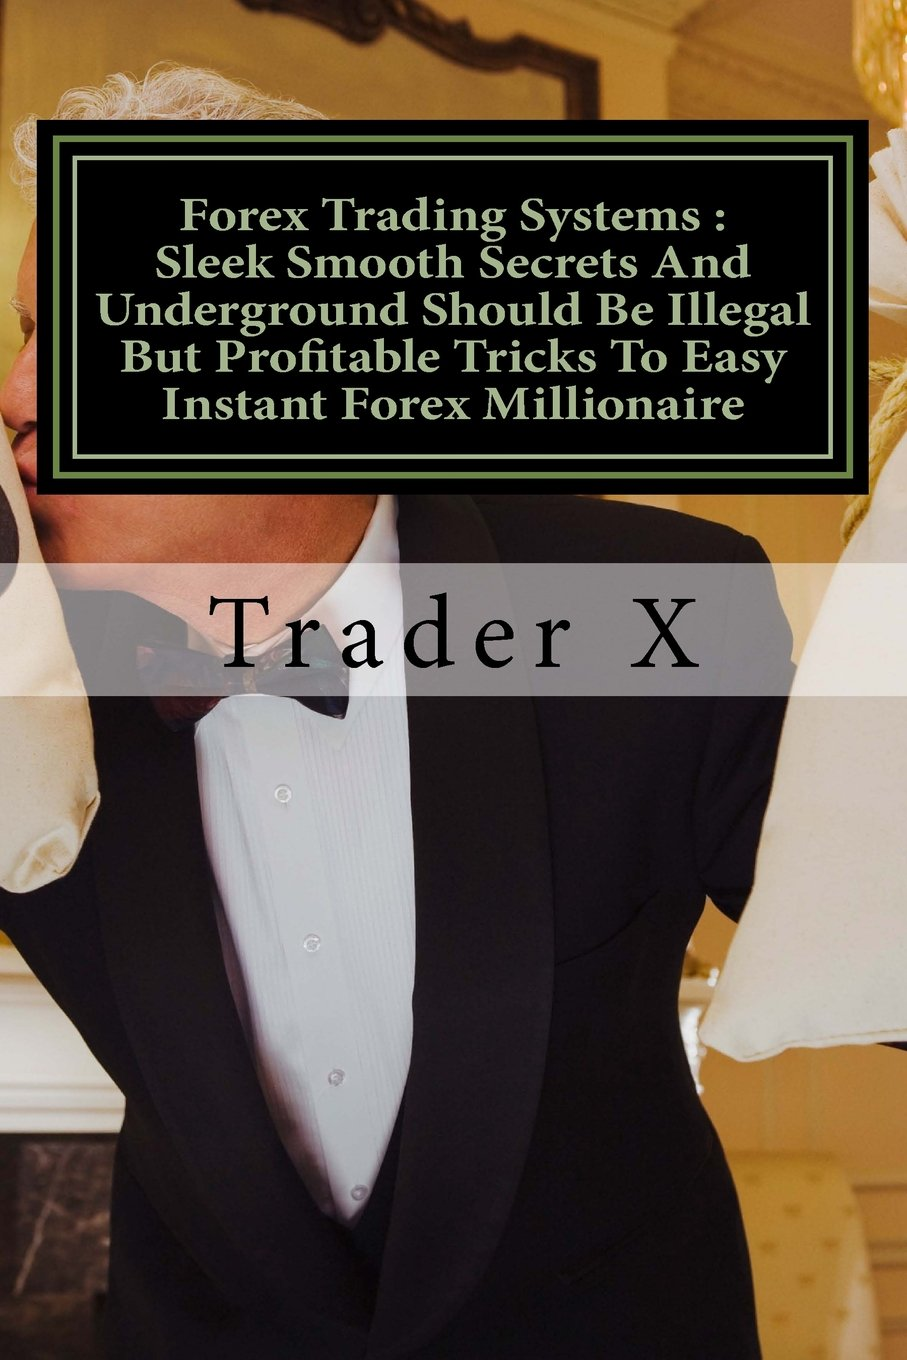 Download Forex Trading Systems : Sleek Smooth Secrets And Underground Should Be Illegal But Profitable Tricks To Easy Instant Forex Millionaire: Bust The Losing Cycle Live Anywhere Join The New Rich PDF